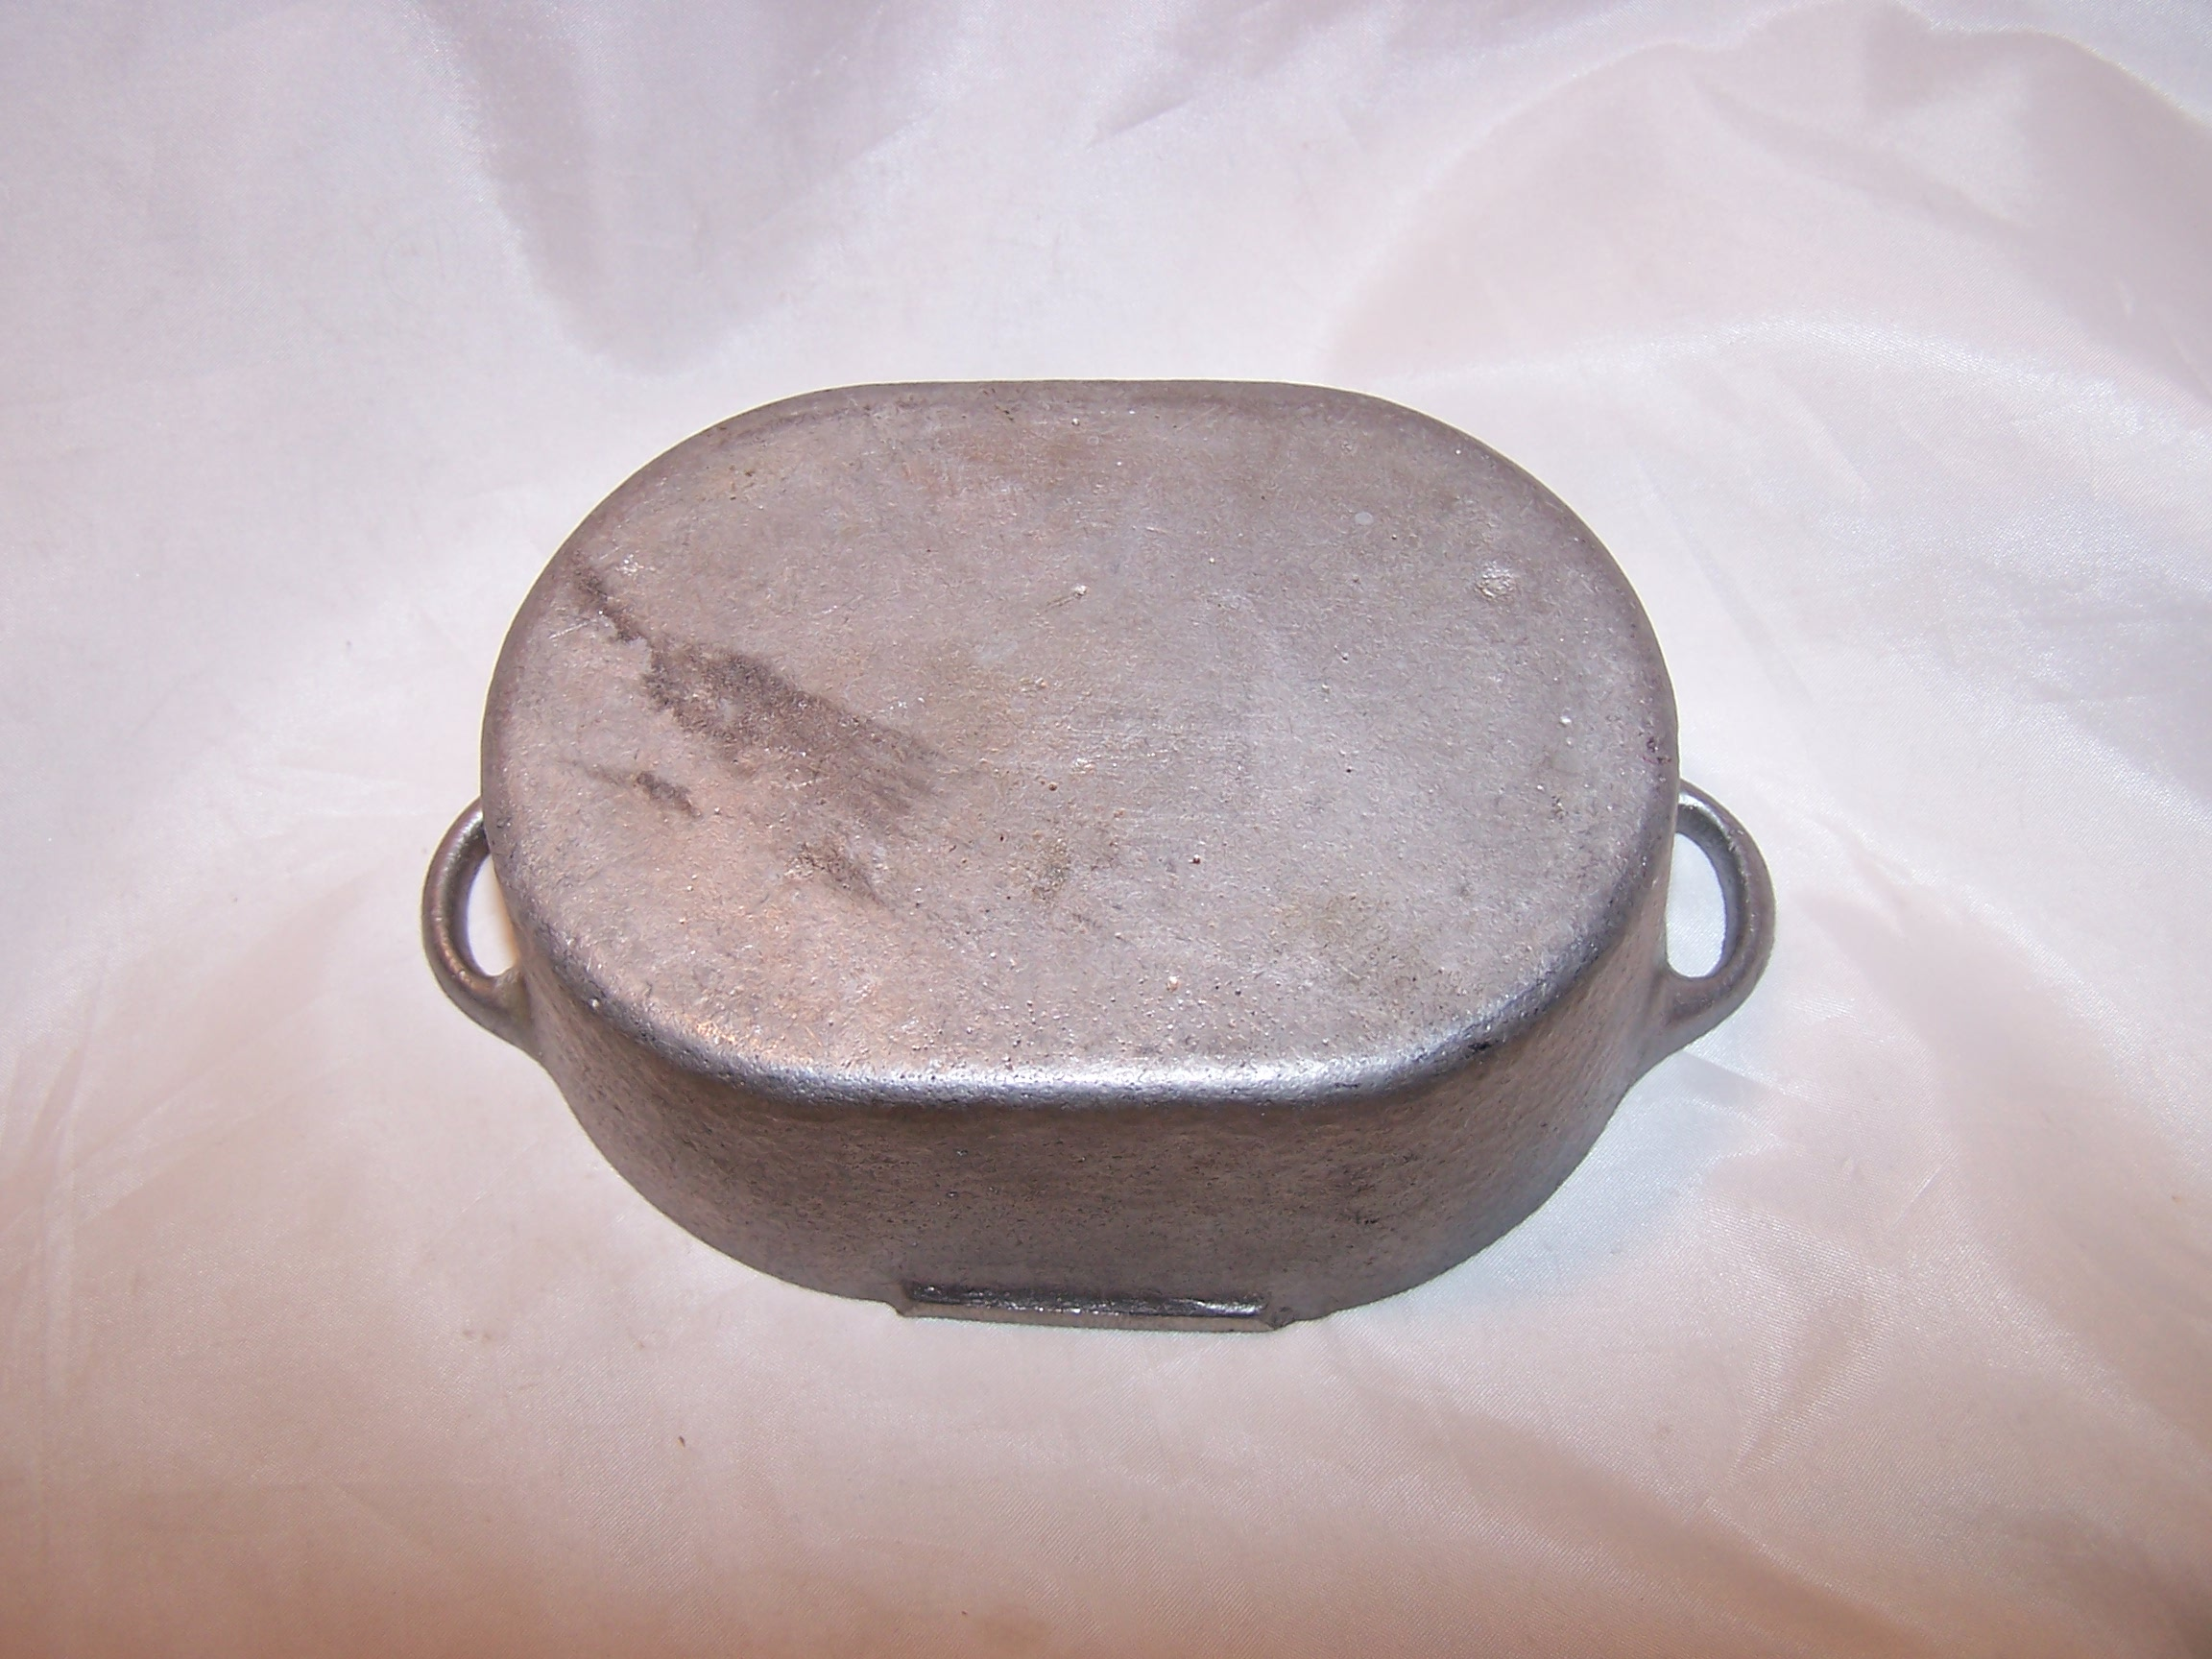 Image 5 of Toy Roaster, Roasting Pan, Vintage Toy